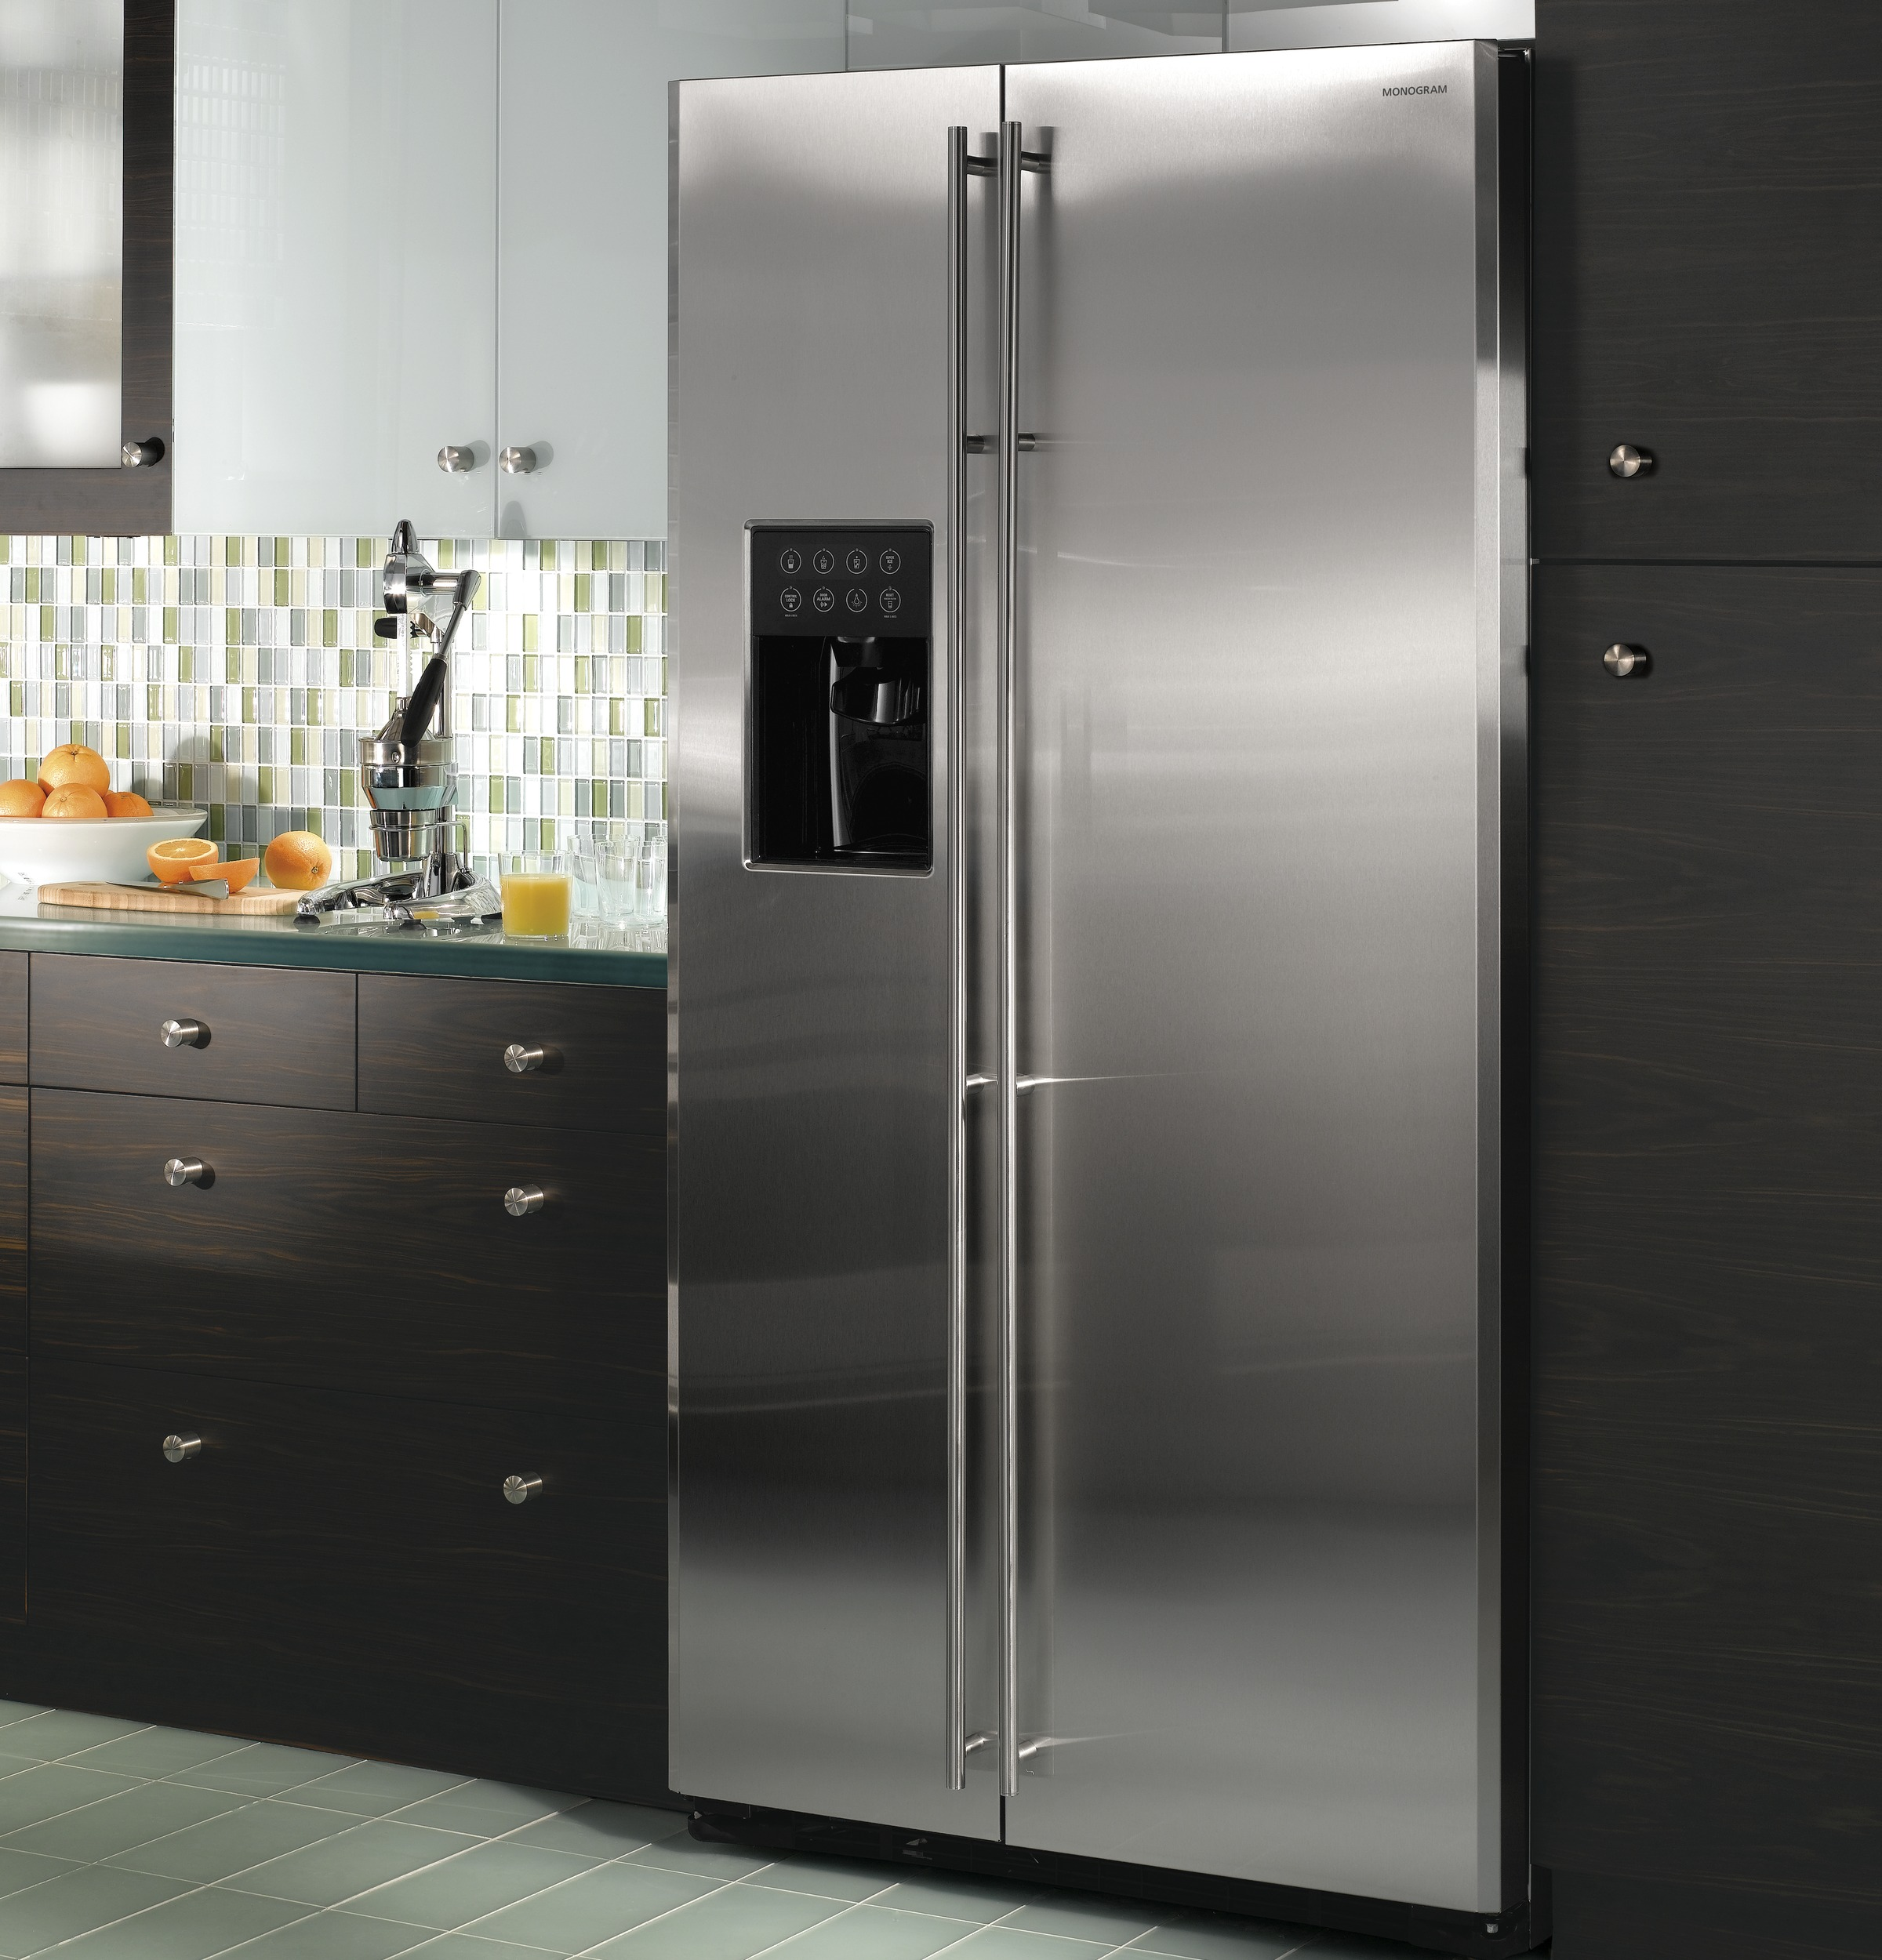 Side by side refrigerator 30 inch width - Product Image Product Image Product Image